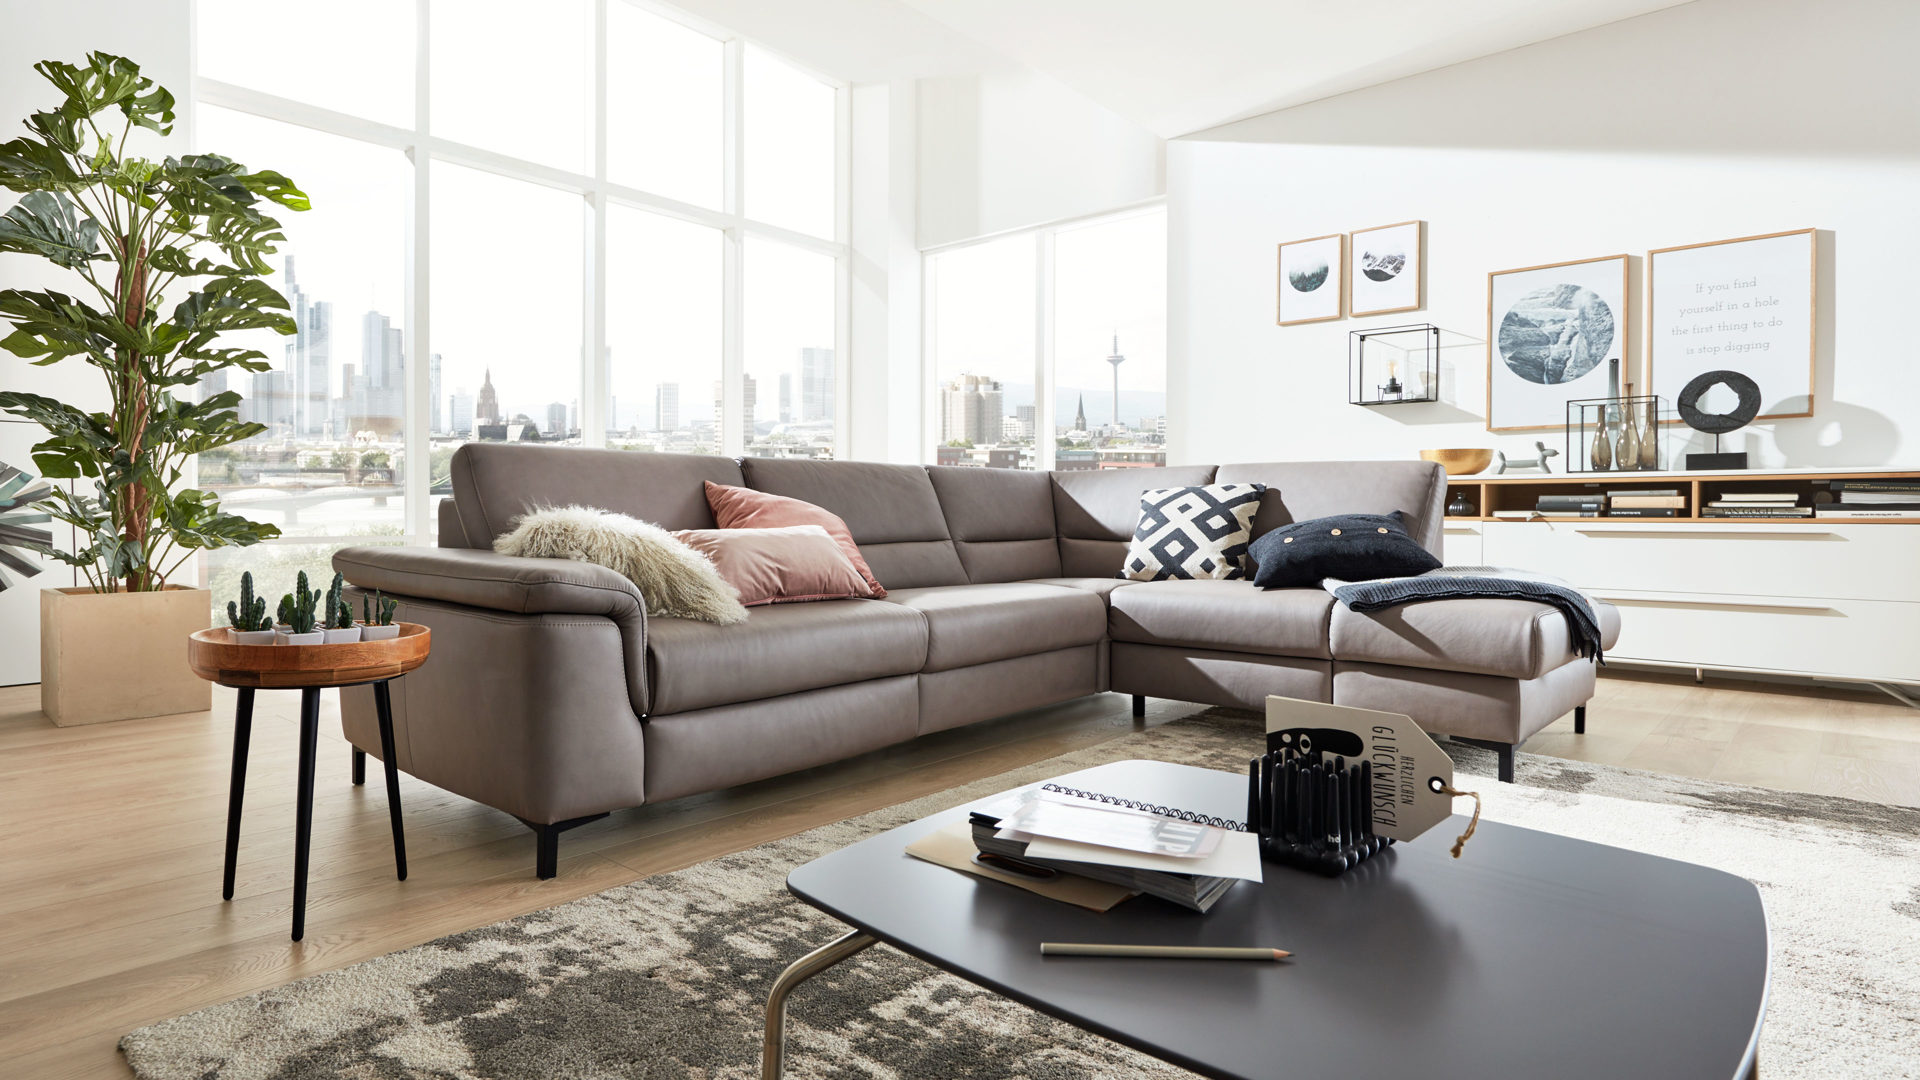 Ecksofa Interliving aus Leder in Grau Interliving Sofa Serie 4355 – Ecksofa mit Federkernpolsterung granitfarbenes Leder Vivre & schwarze Profilfüße – Stellfläche ca. 290 x 211 cm